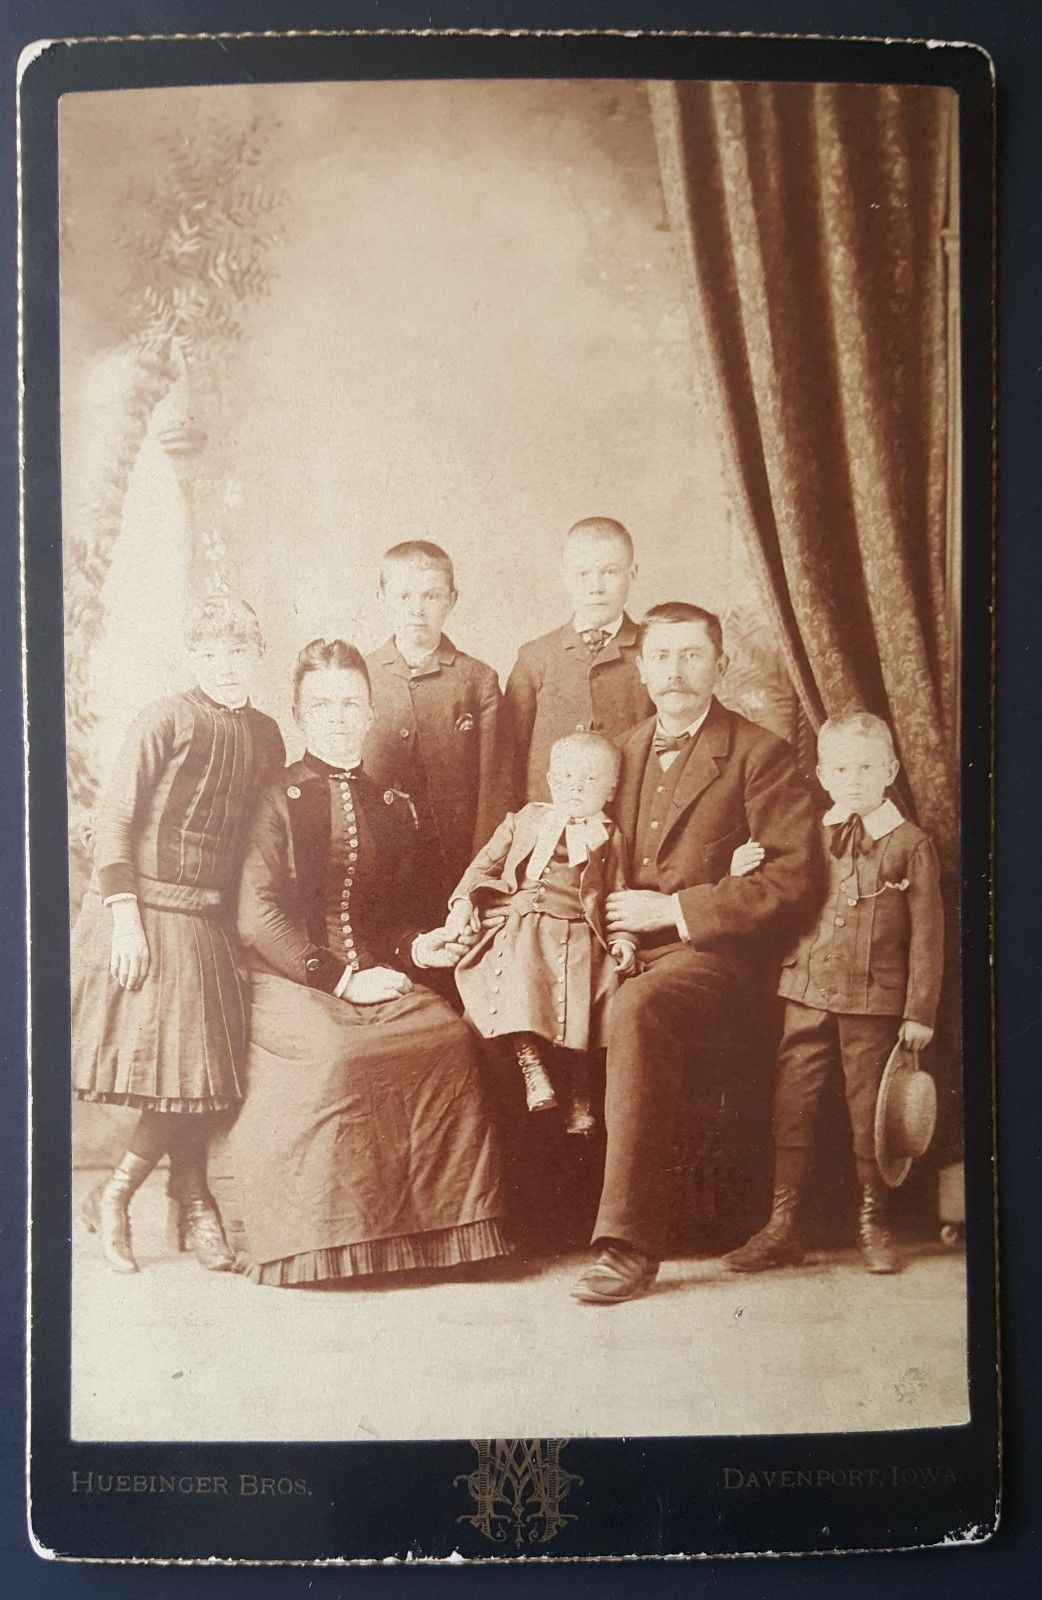 CC270 Cabinet Card Family of 7 Piece of Fabric Included 1880s Davenport IA…